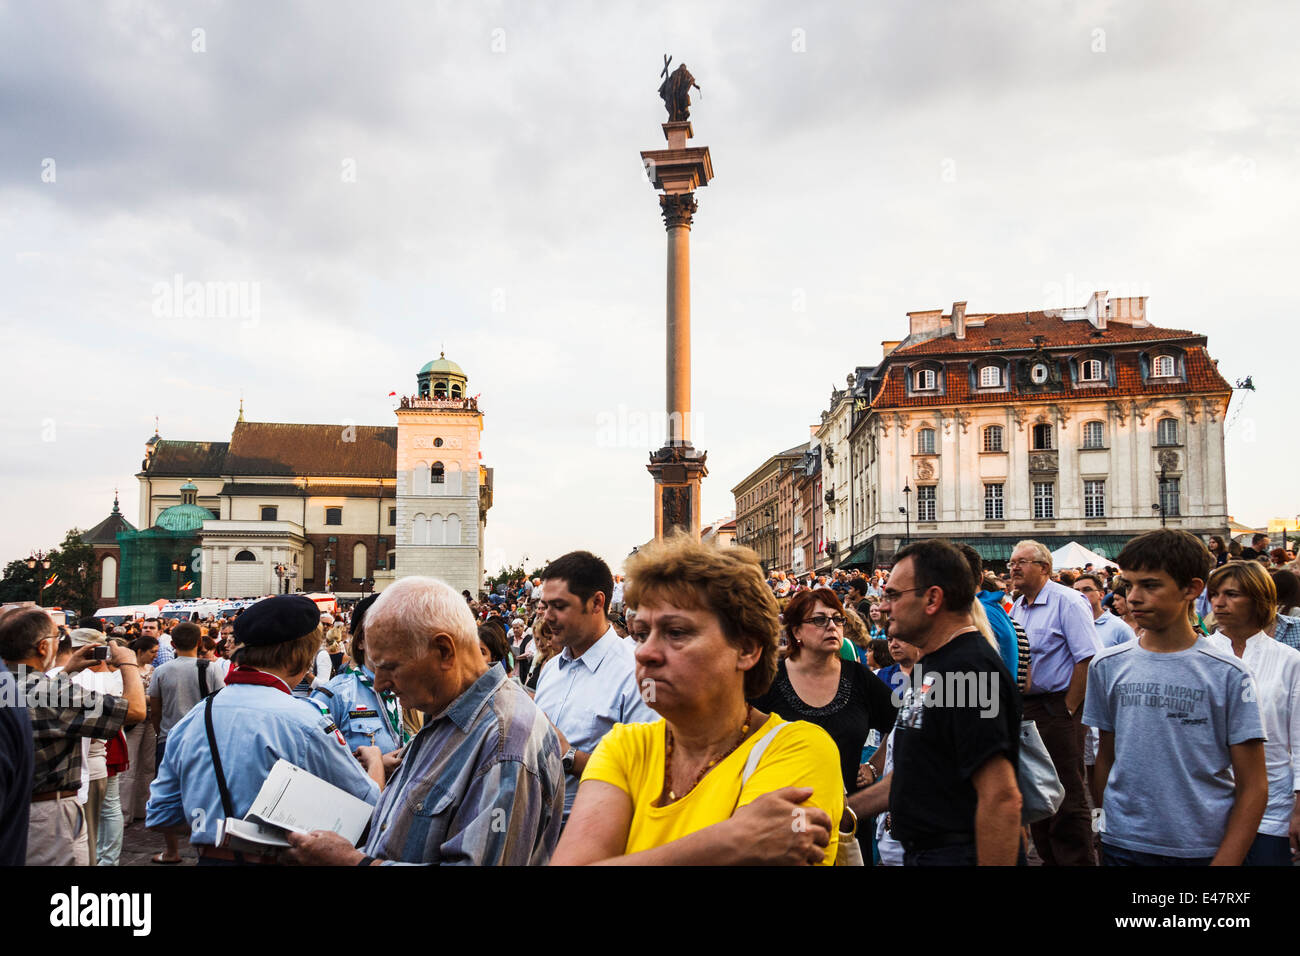 Crowd gathered on Castle square to commemorate the Warsaw Uprising on Warsaw uprising Remembrance Day. Warsaw, Poland. - Stock Image